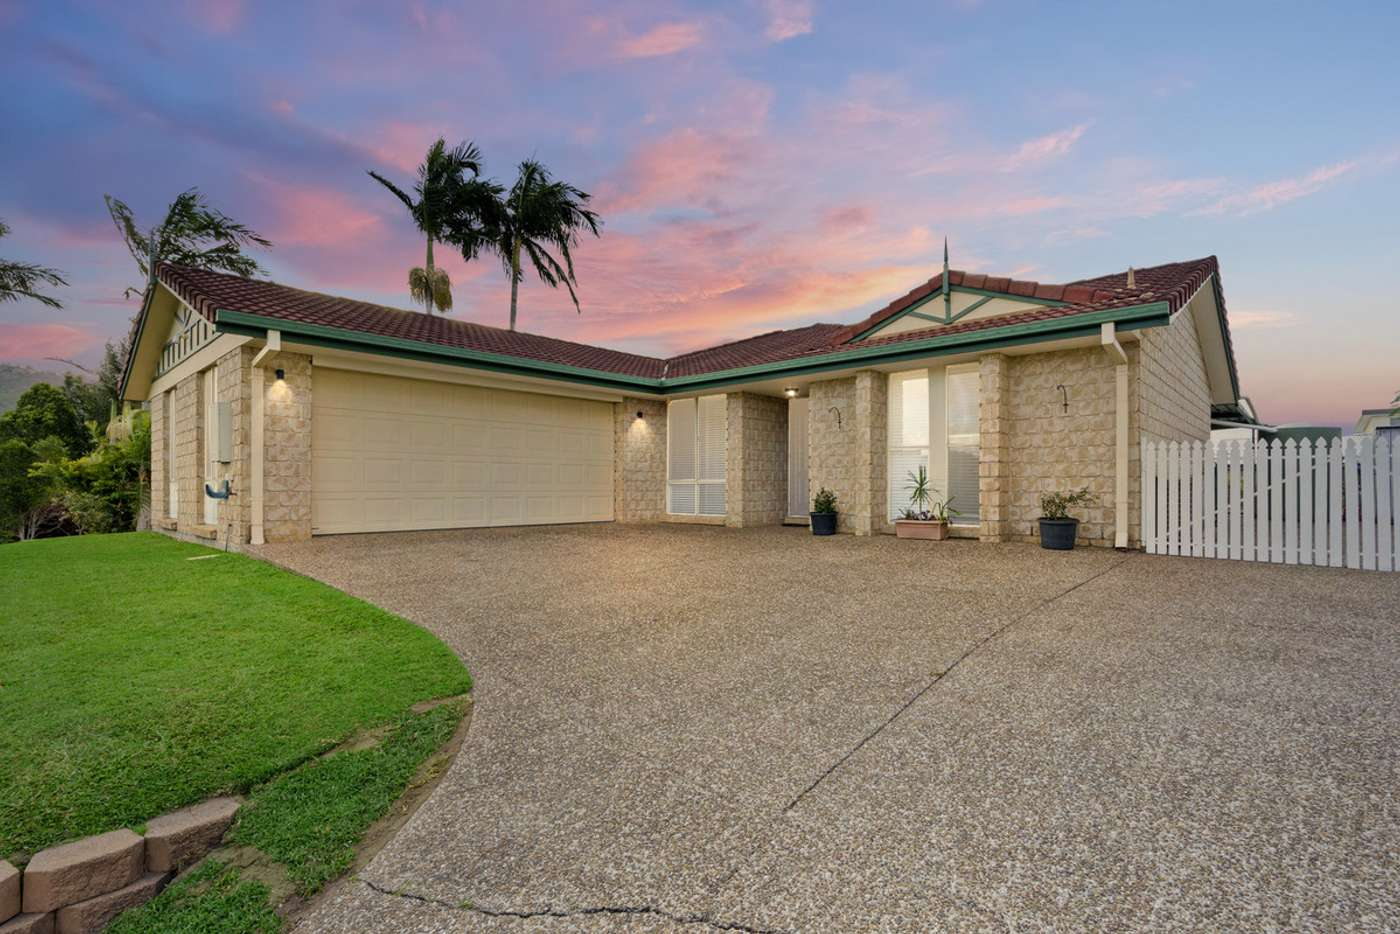 Main view of Homely house listing, 15 Ferricks Court, Upper Coomera QLD 4209